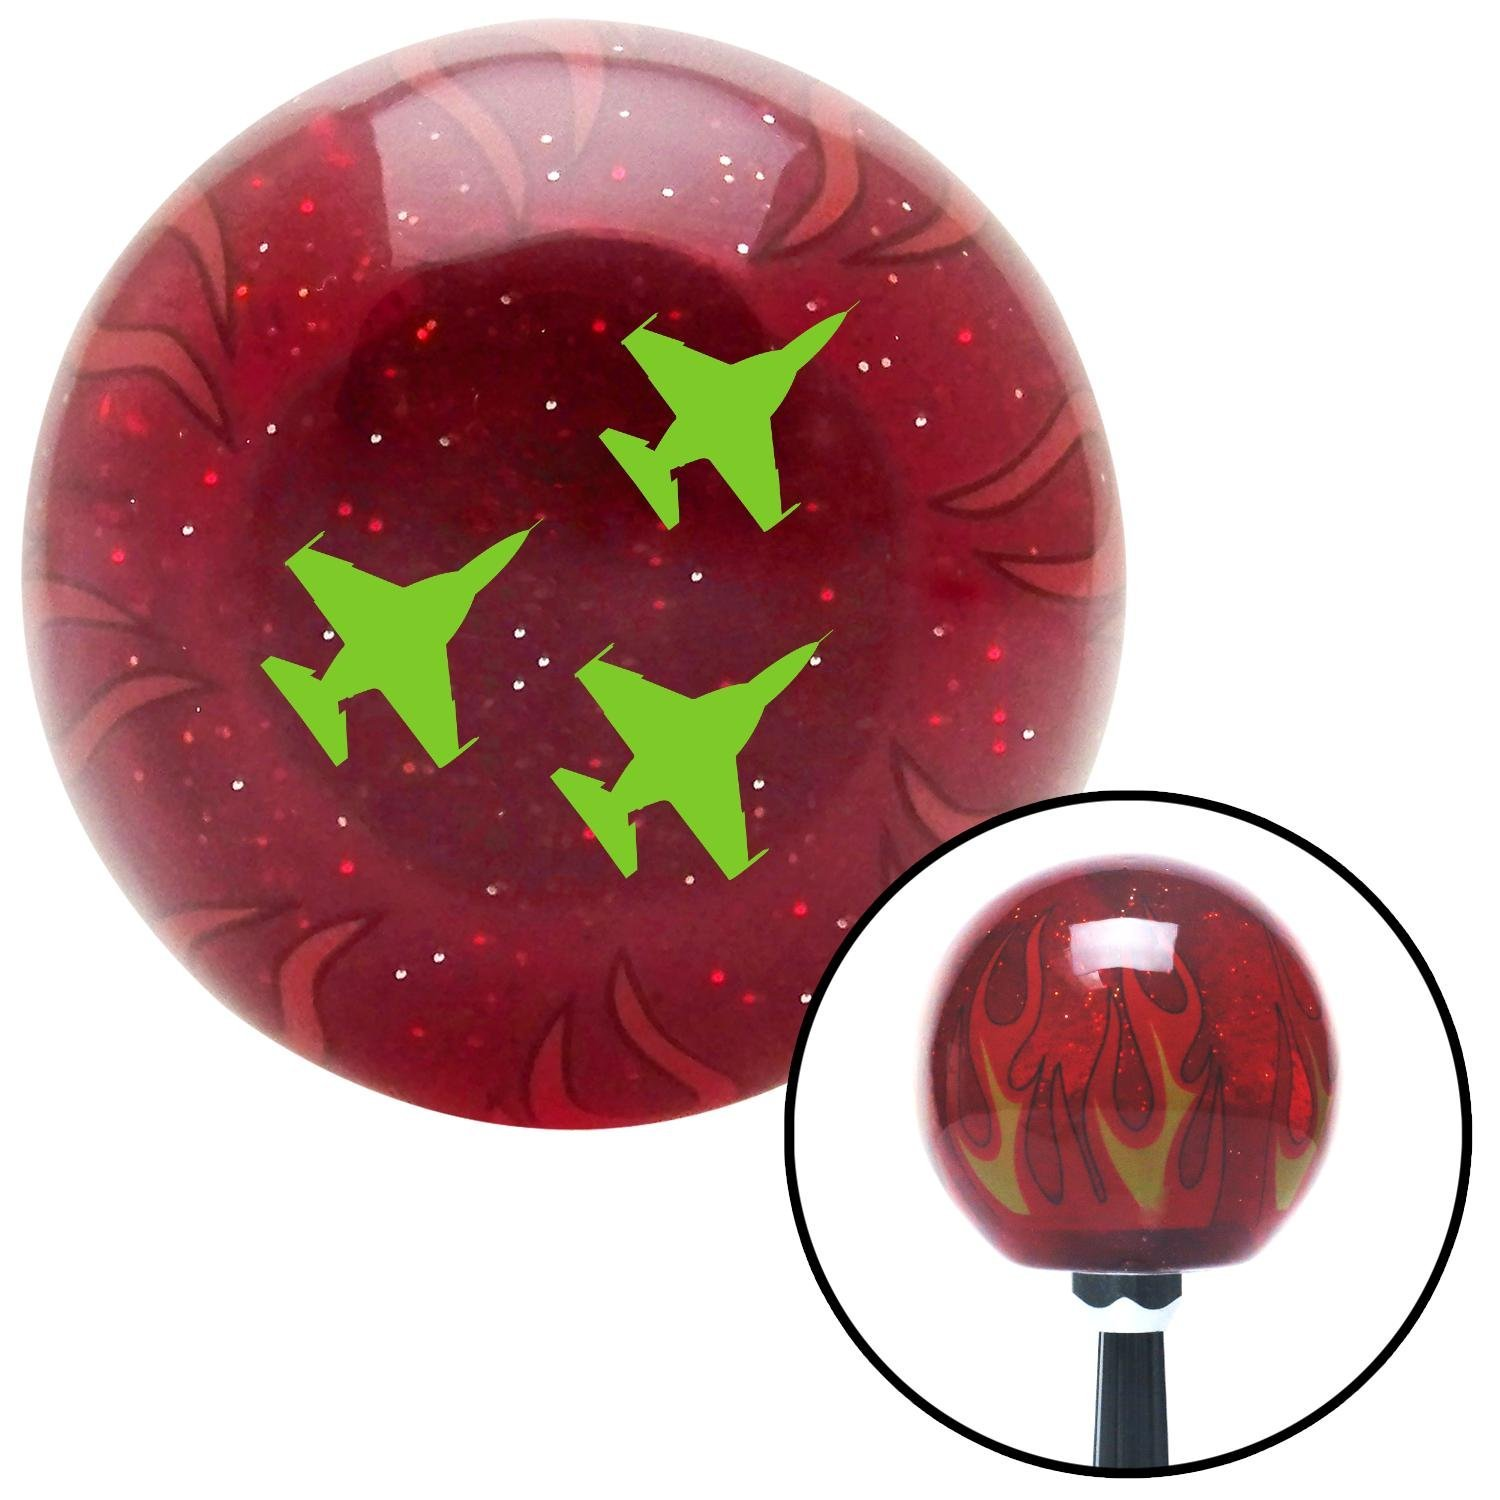 Green Jets American Shifter 241837 Red Flame Metal Flake Shift Knob with M16 x 1.5 Insert